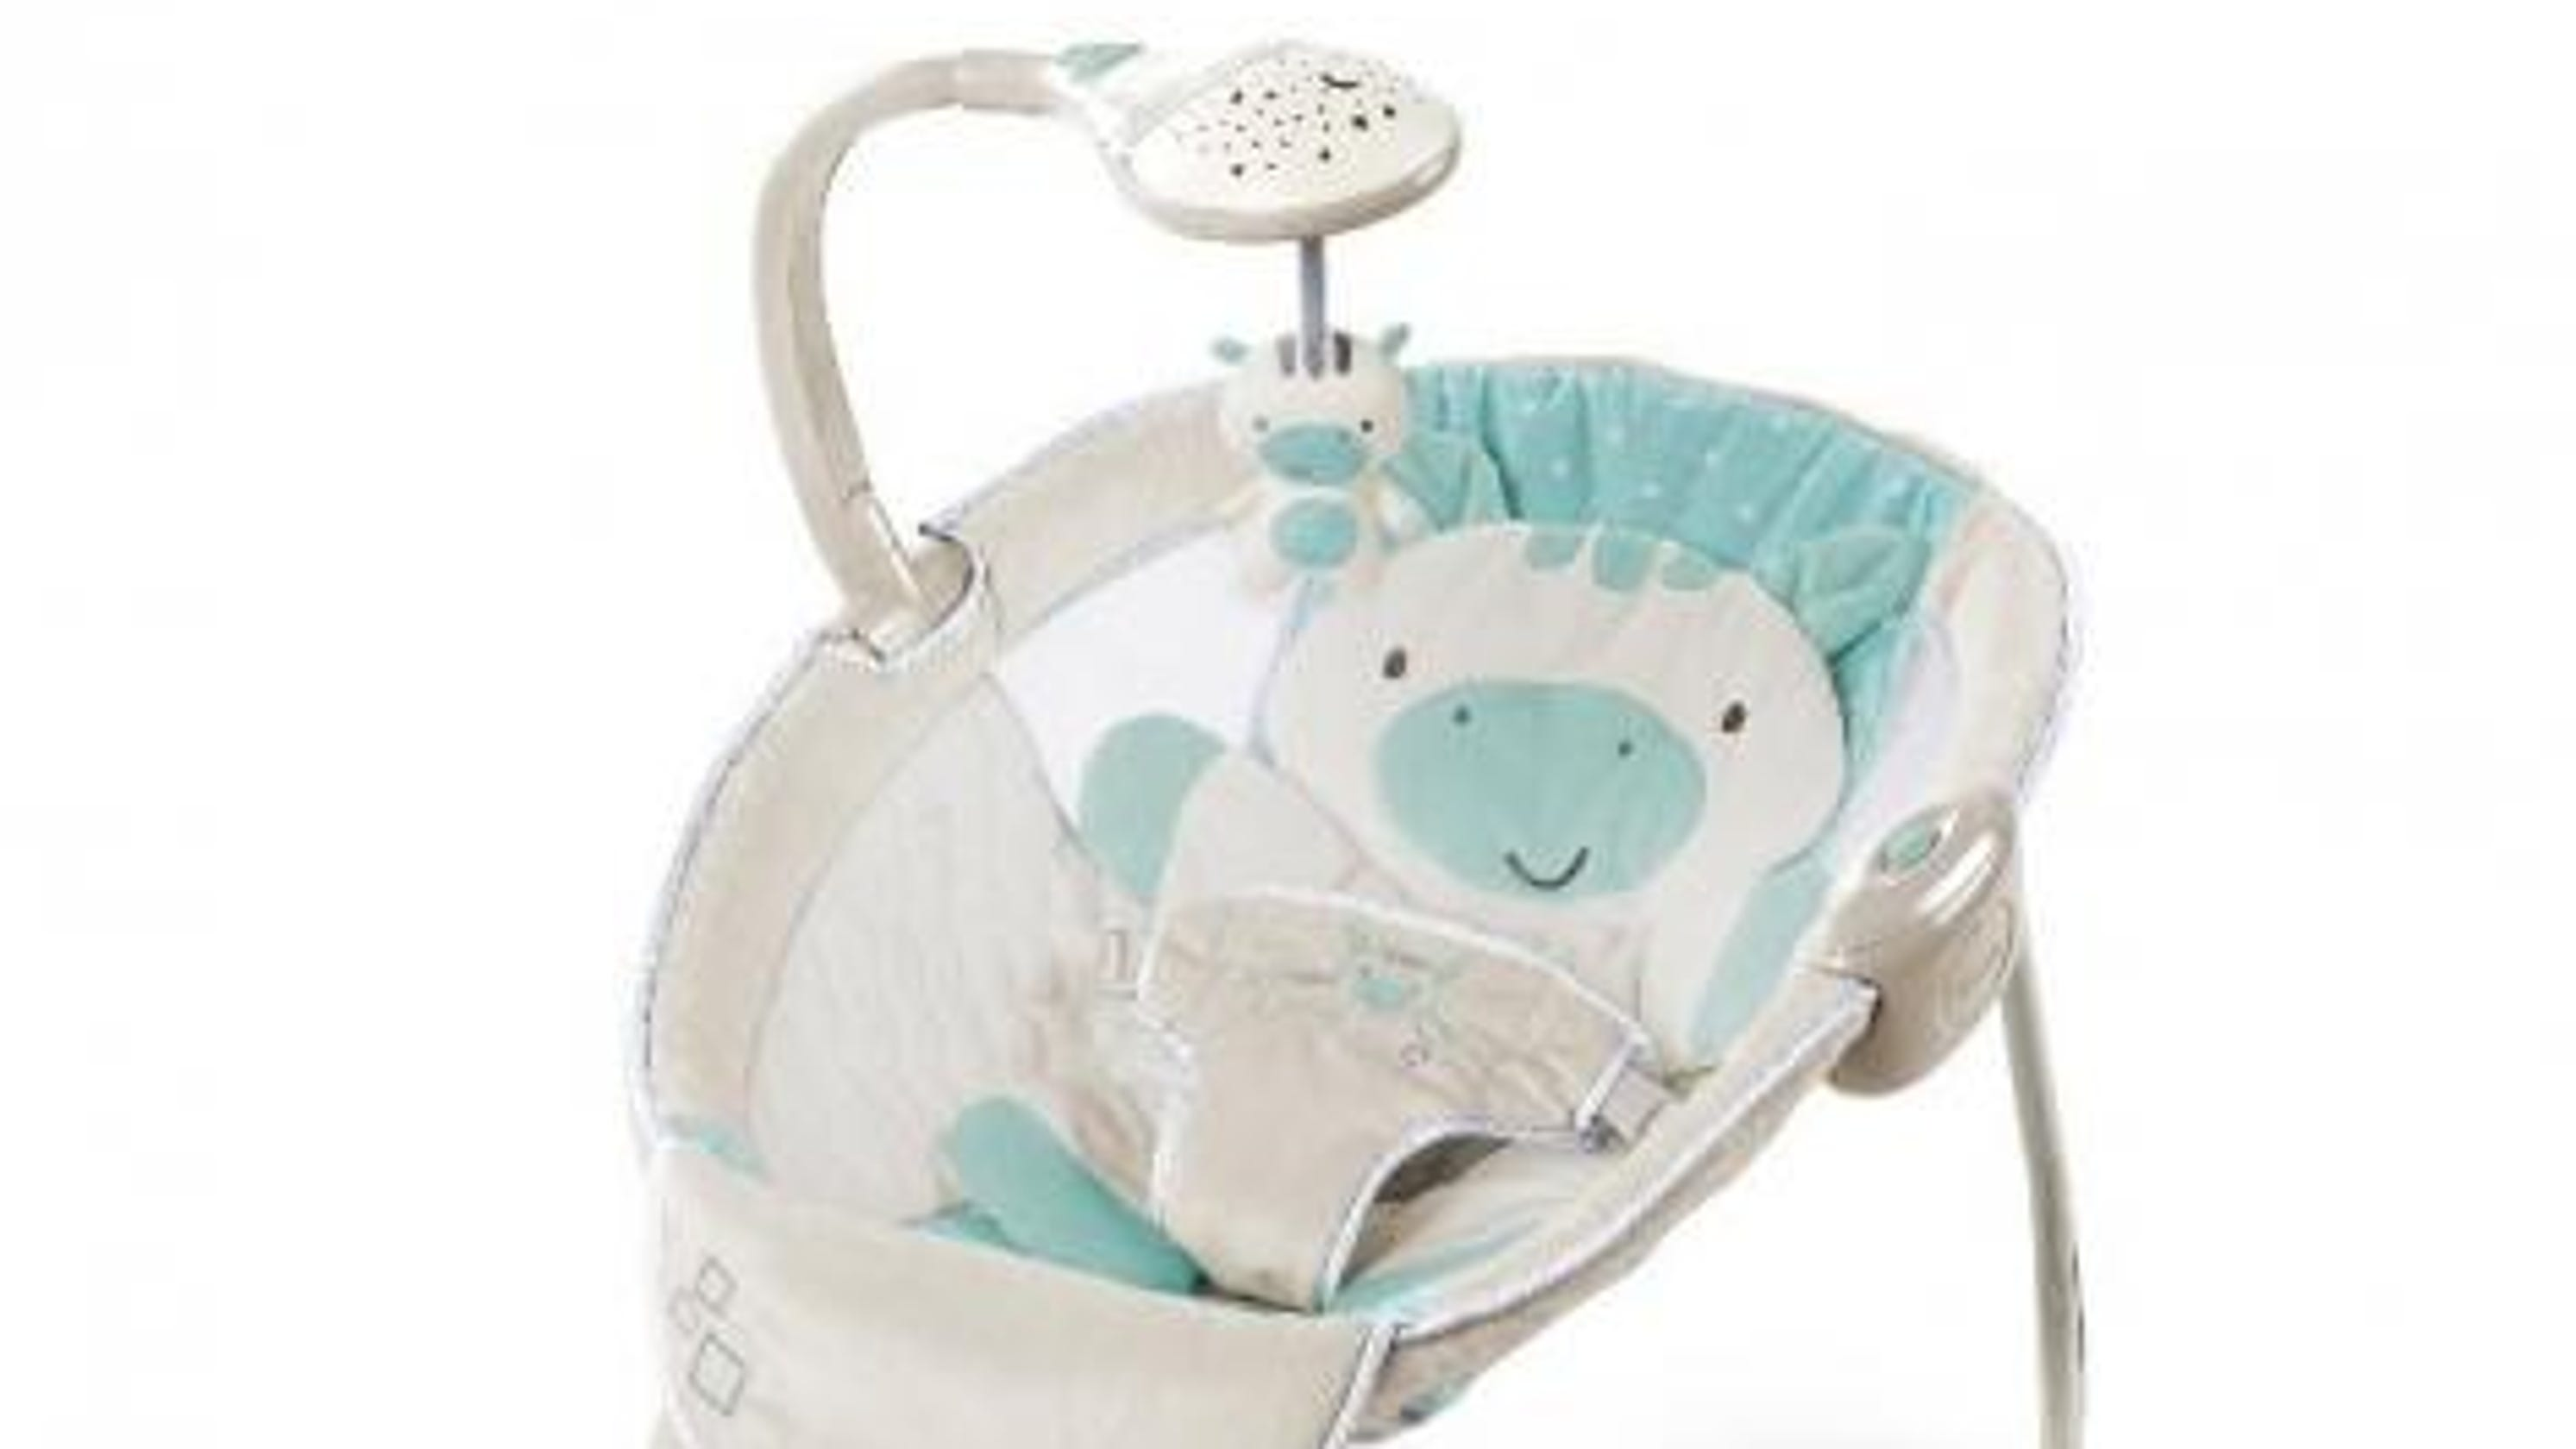 Recalled Baby Items What You Should Know